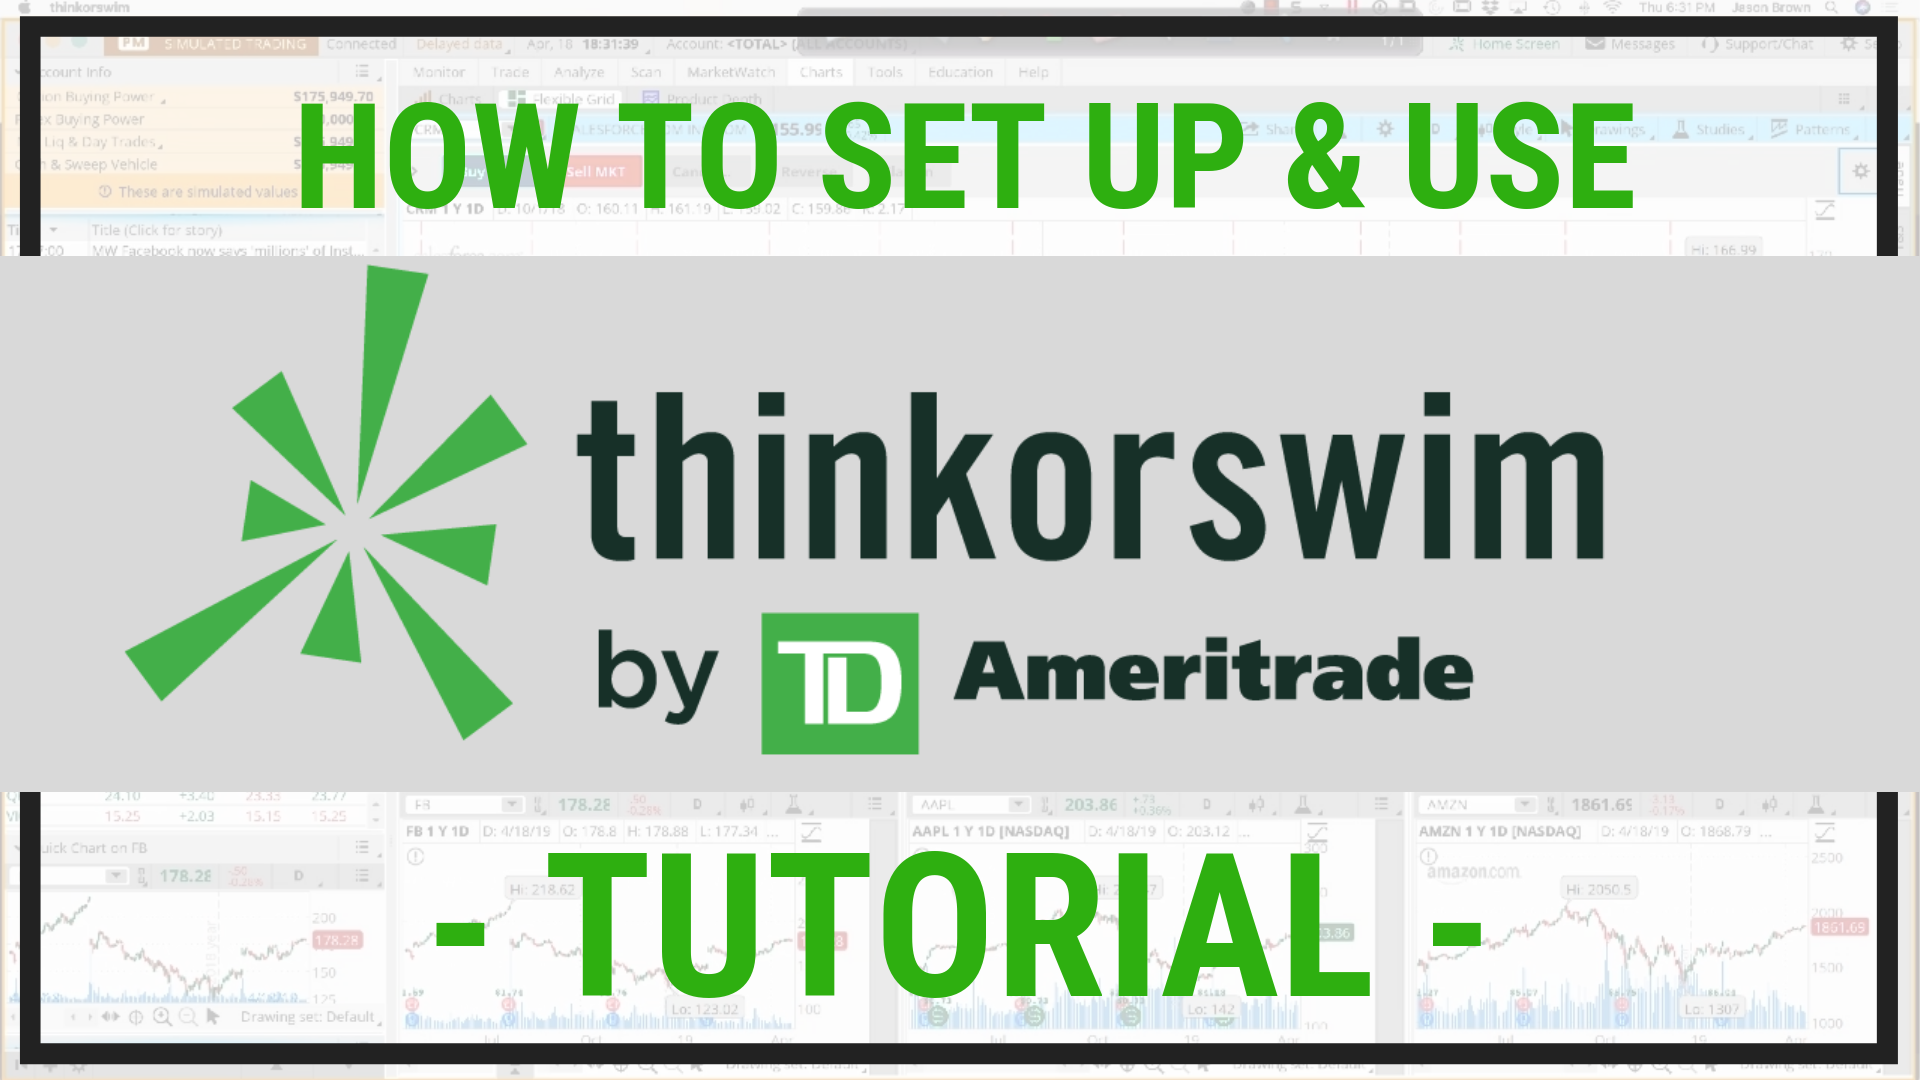 How to Use ThinkorSwim by TD Ameritrade Tutorial | Jason Brown